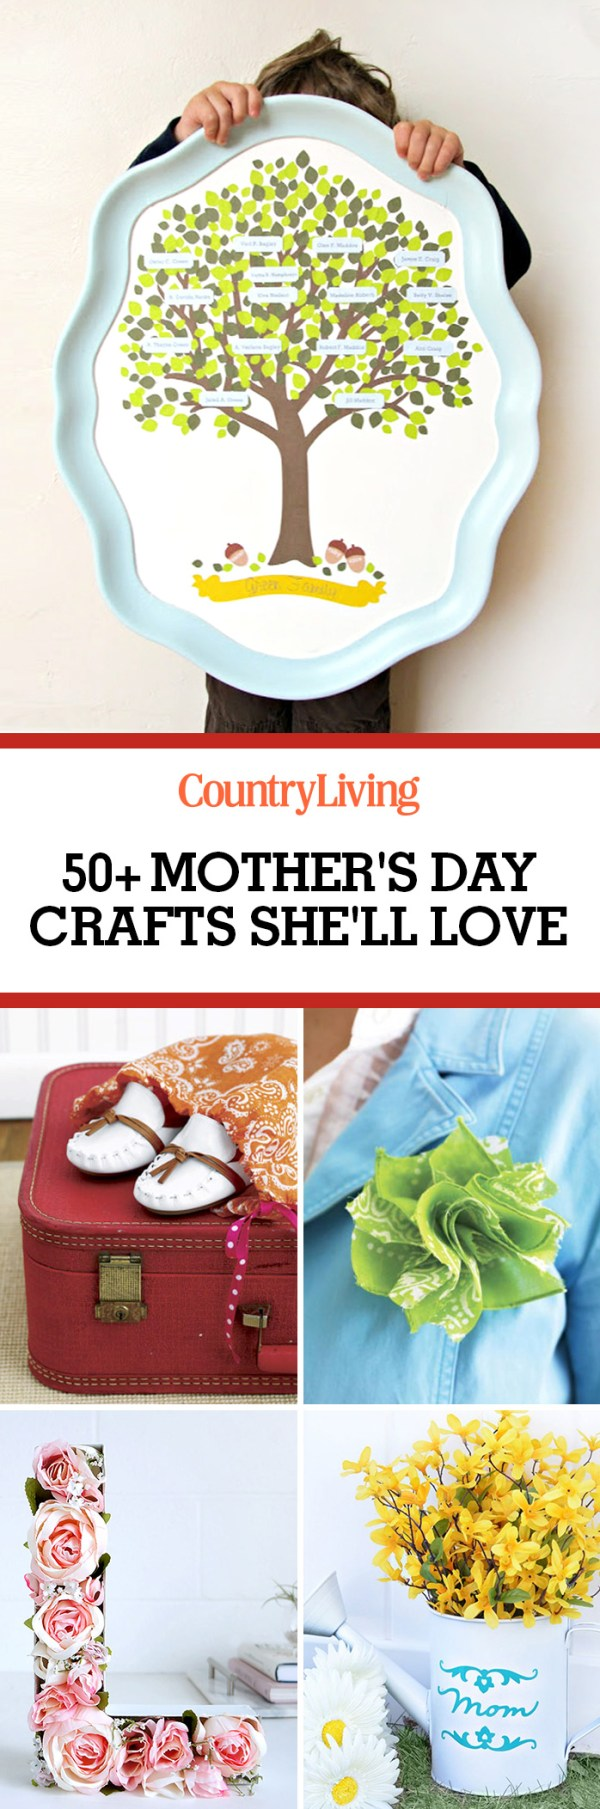 56 Easy Mothers Day Crafts - DIY Gifts for Mom Ideas